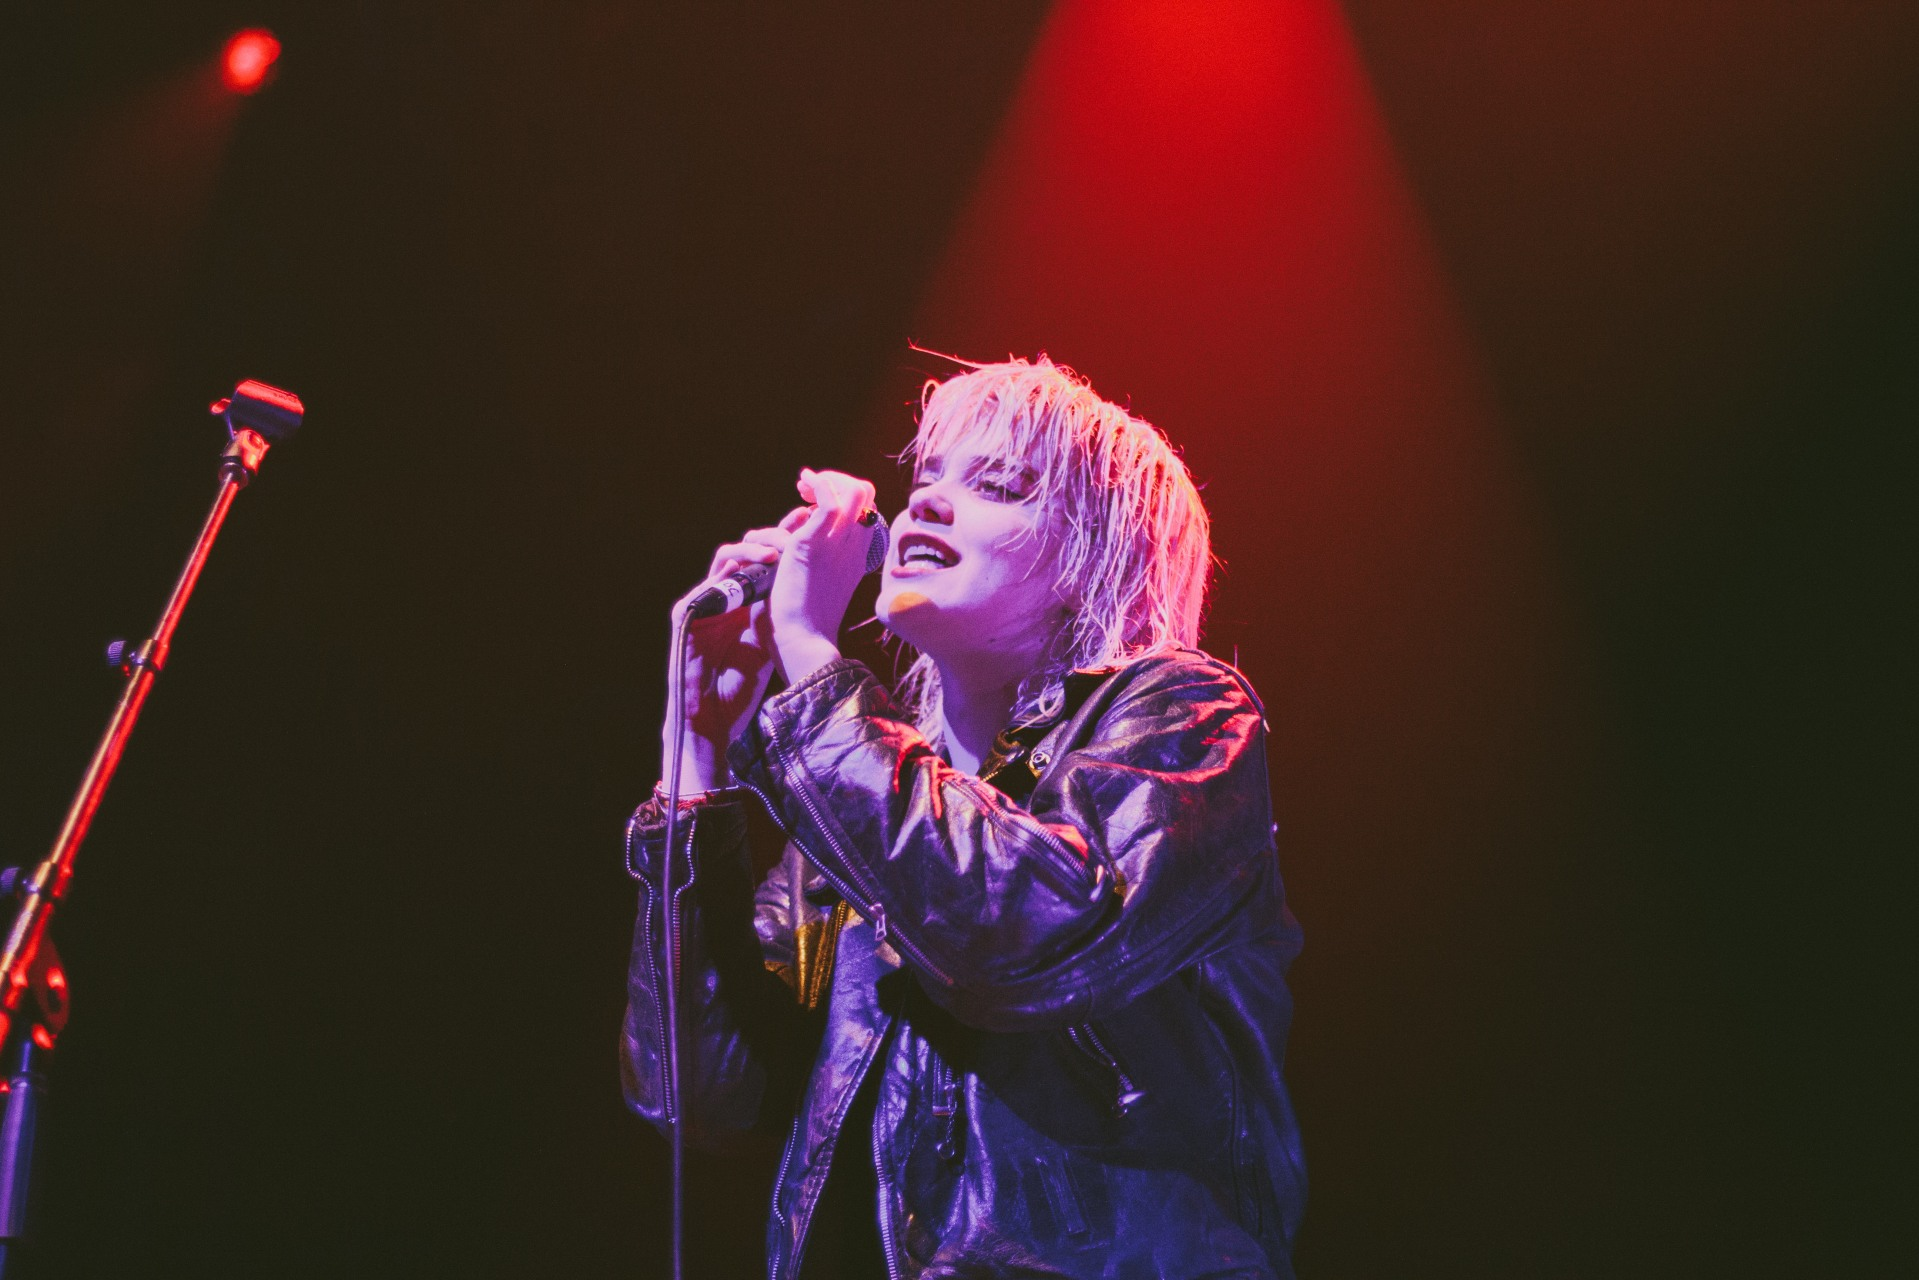 This picture is of a blonde Sky Ferreira singing into a mircrophone with red and blue lights in the background.